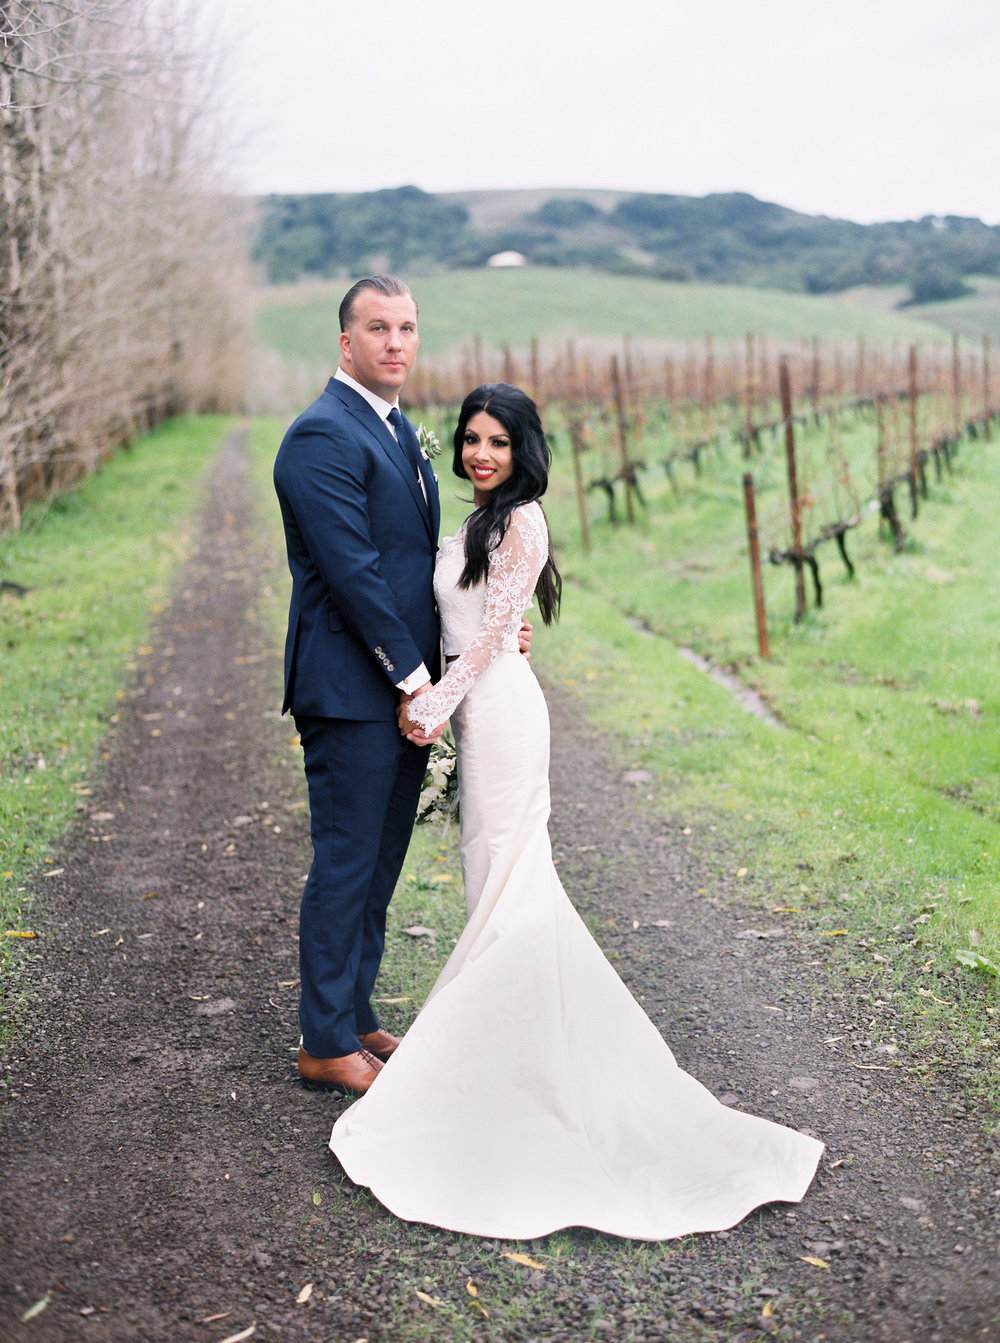 romantic-wedding-at-cline-winery-in-sonoma-california-1-20.jpg